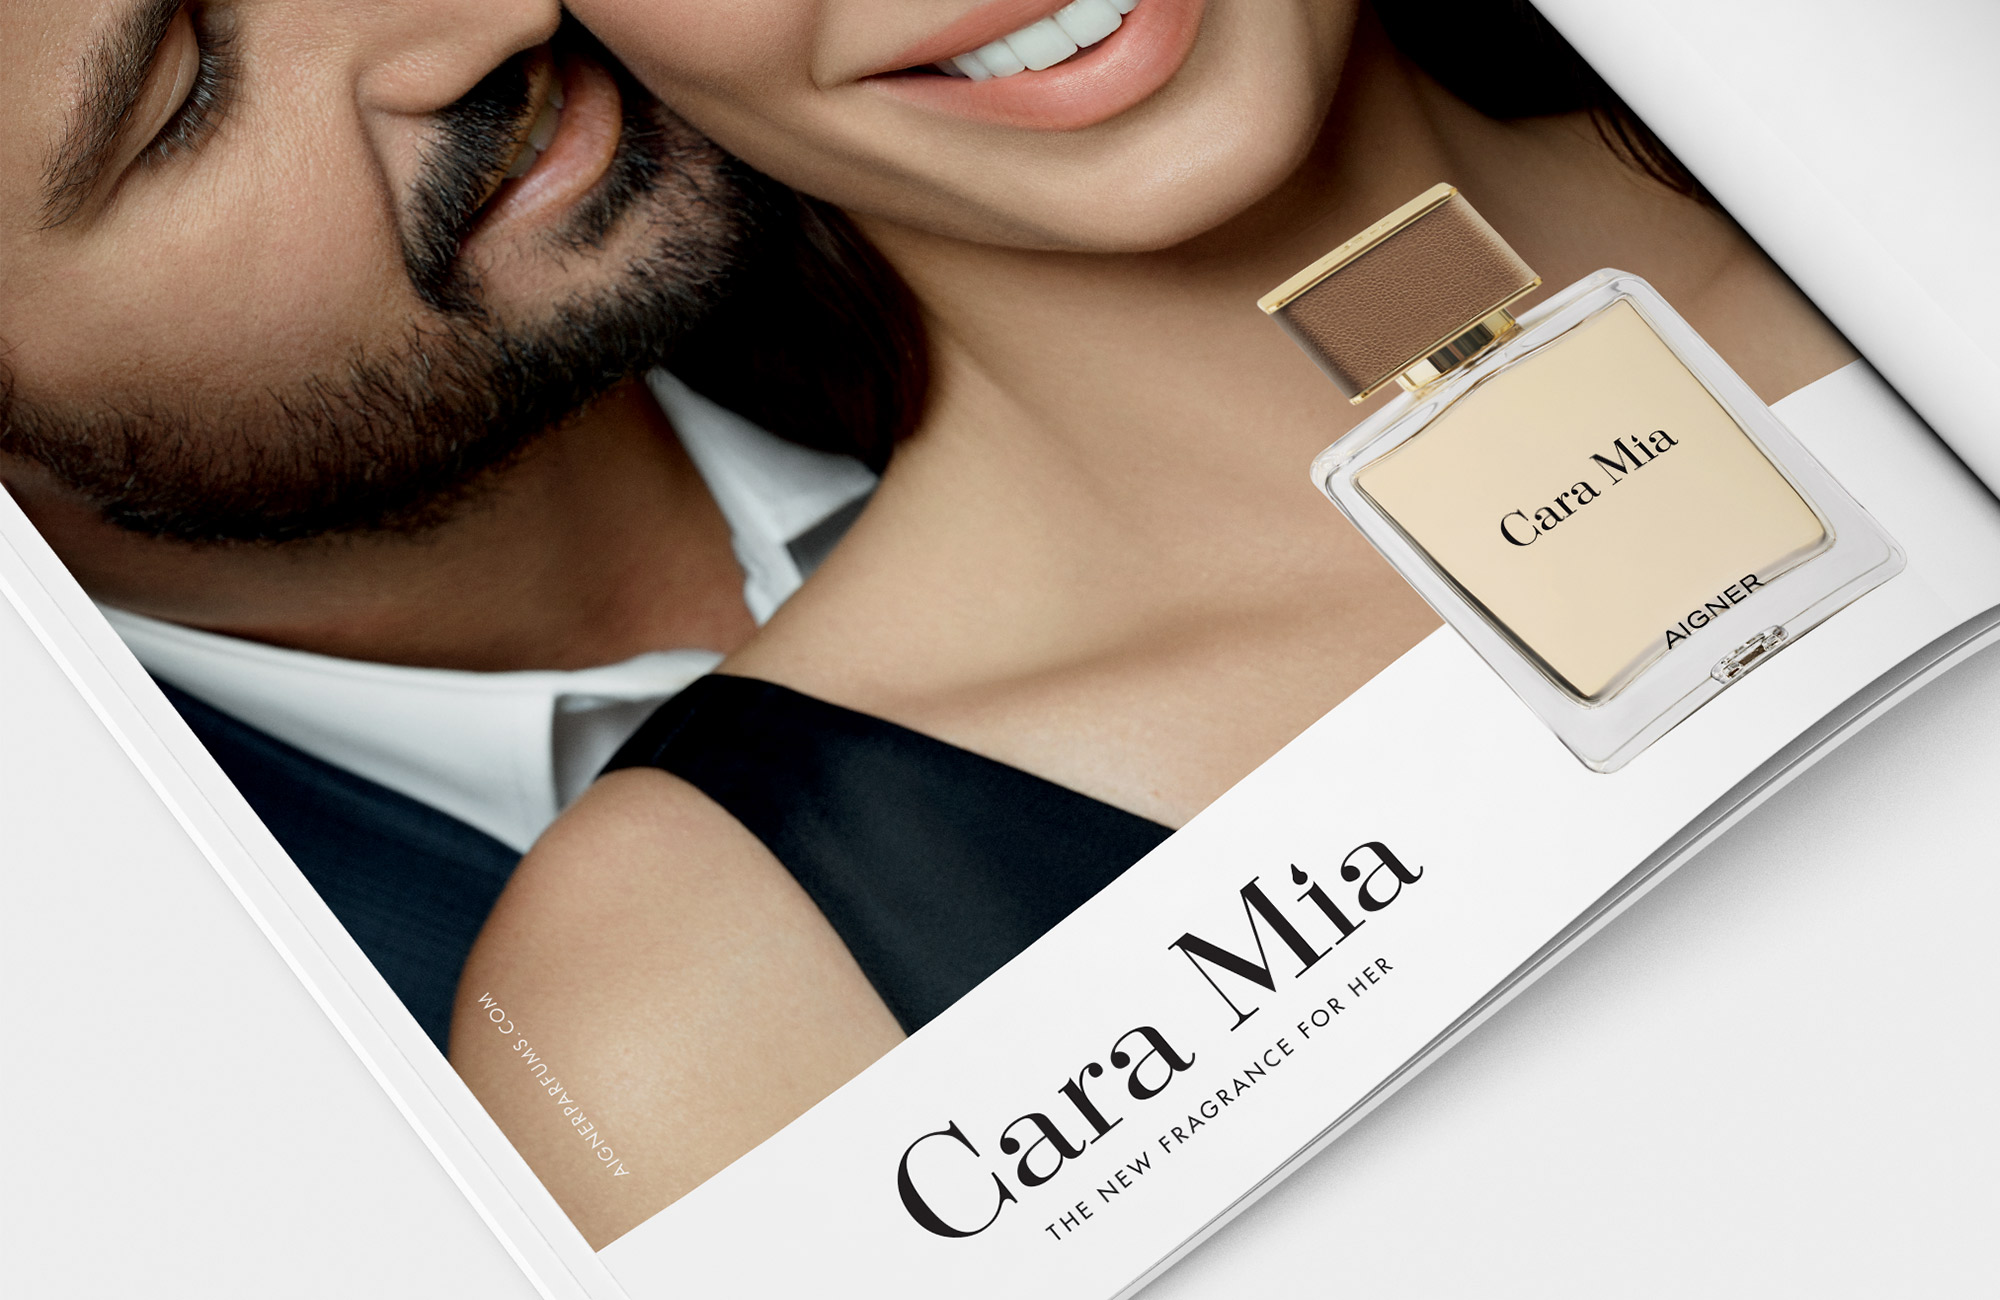 TG_WEBSITE_AIGNER_FRAGRANCE_CARA_MIA_2000X1300PX_ANZEIGE_CLOSE_UP.jpg